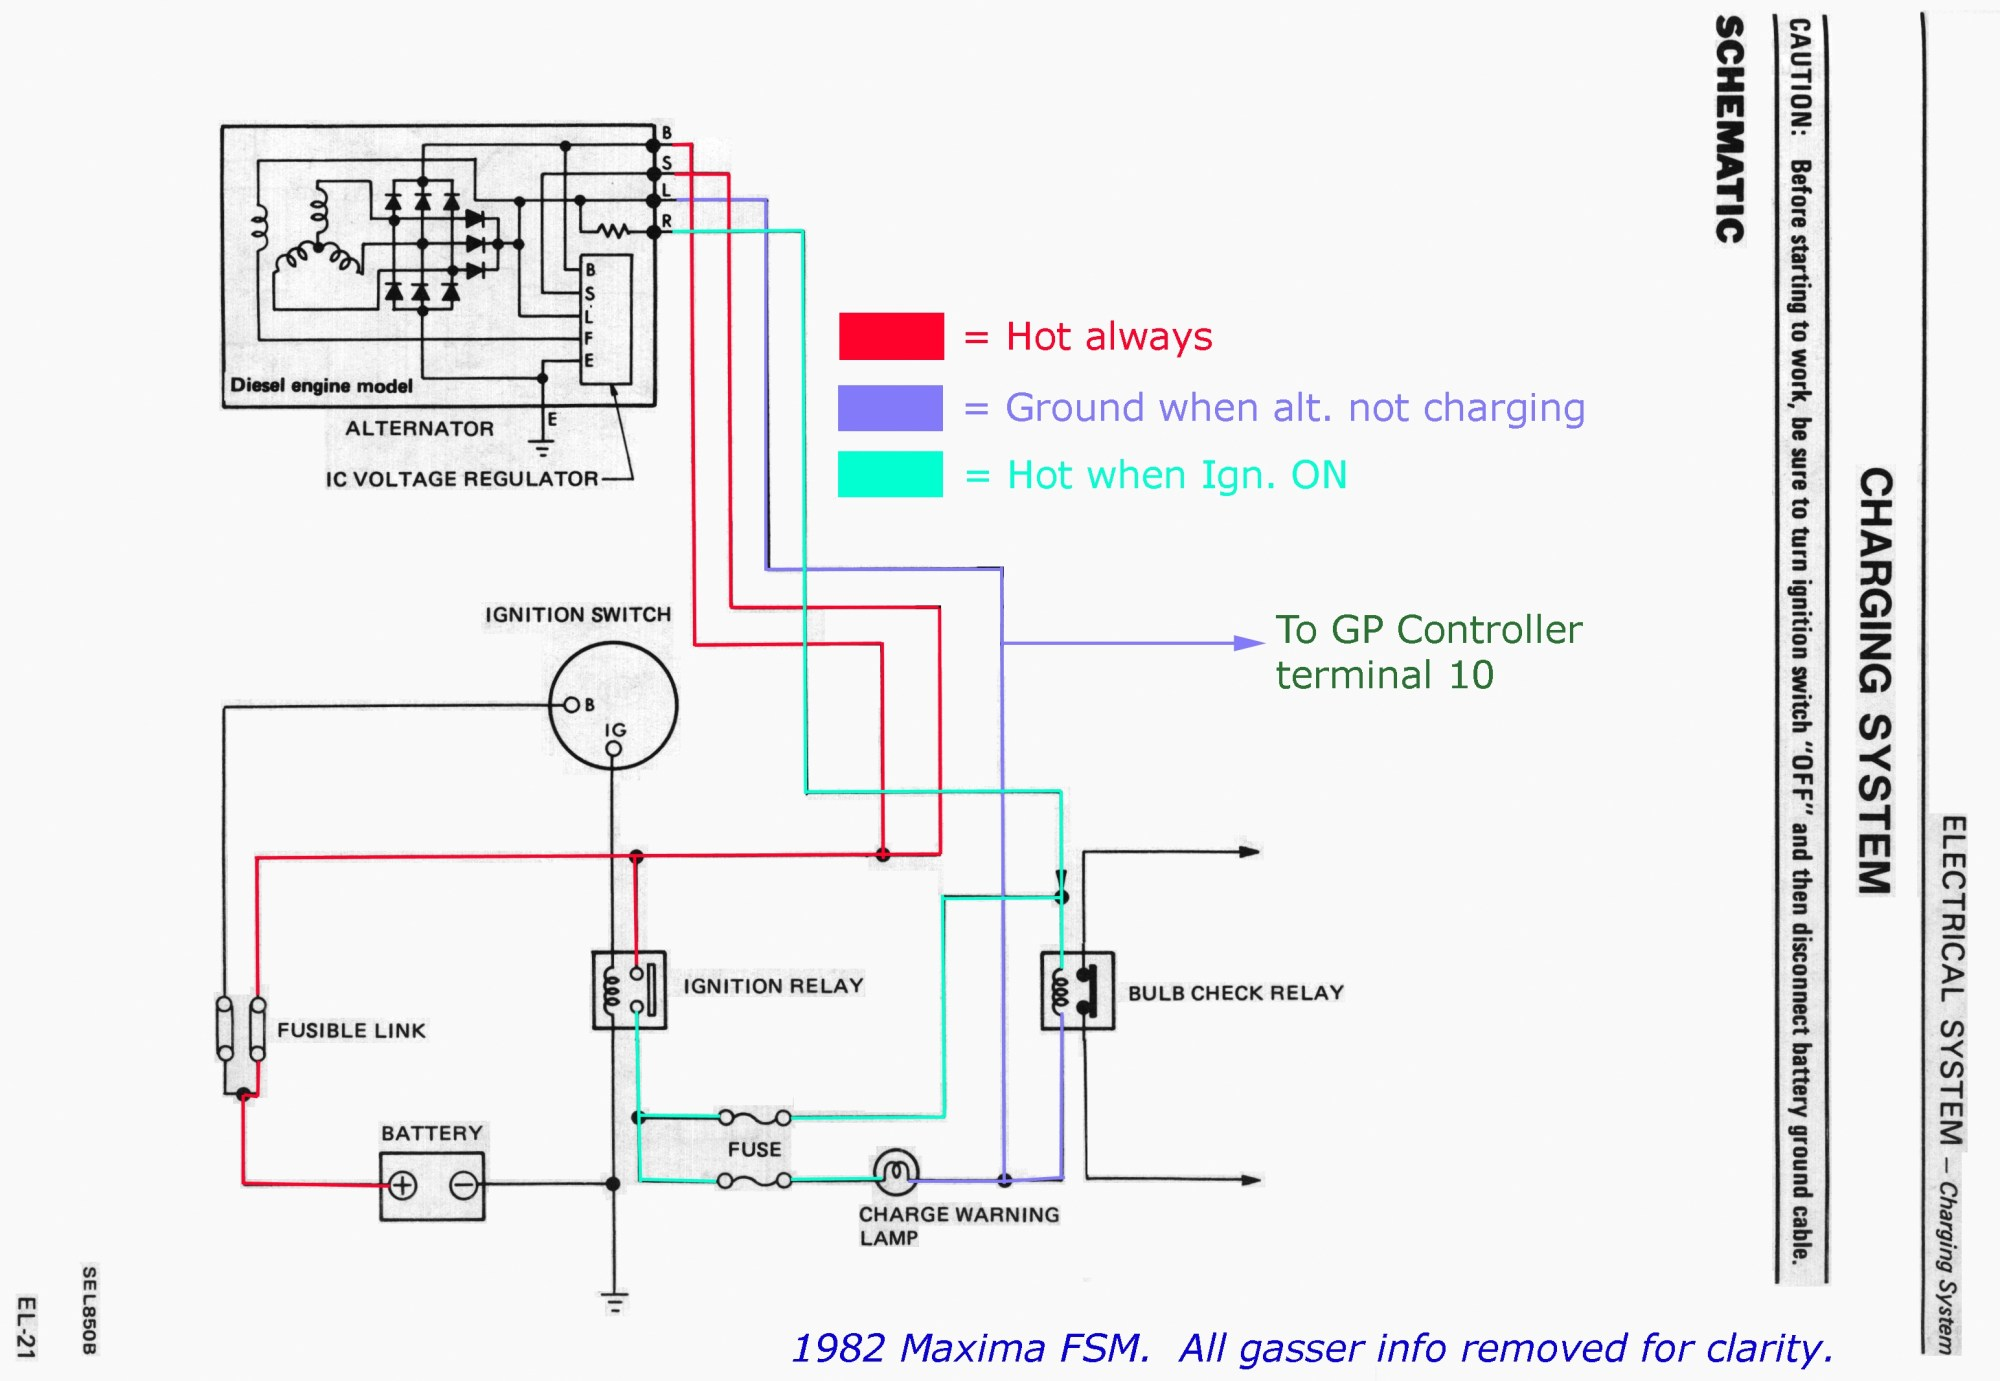 hight resolution of 1981 datsun pick up wiring schematic simple wiring diagram schema82 toyota alternator wiring diagram wiring diagram